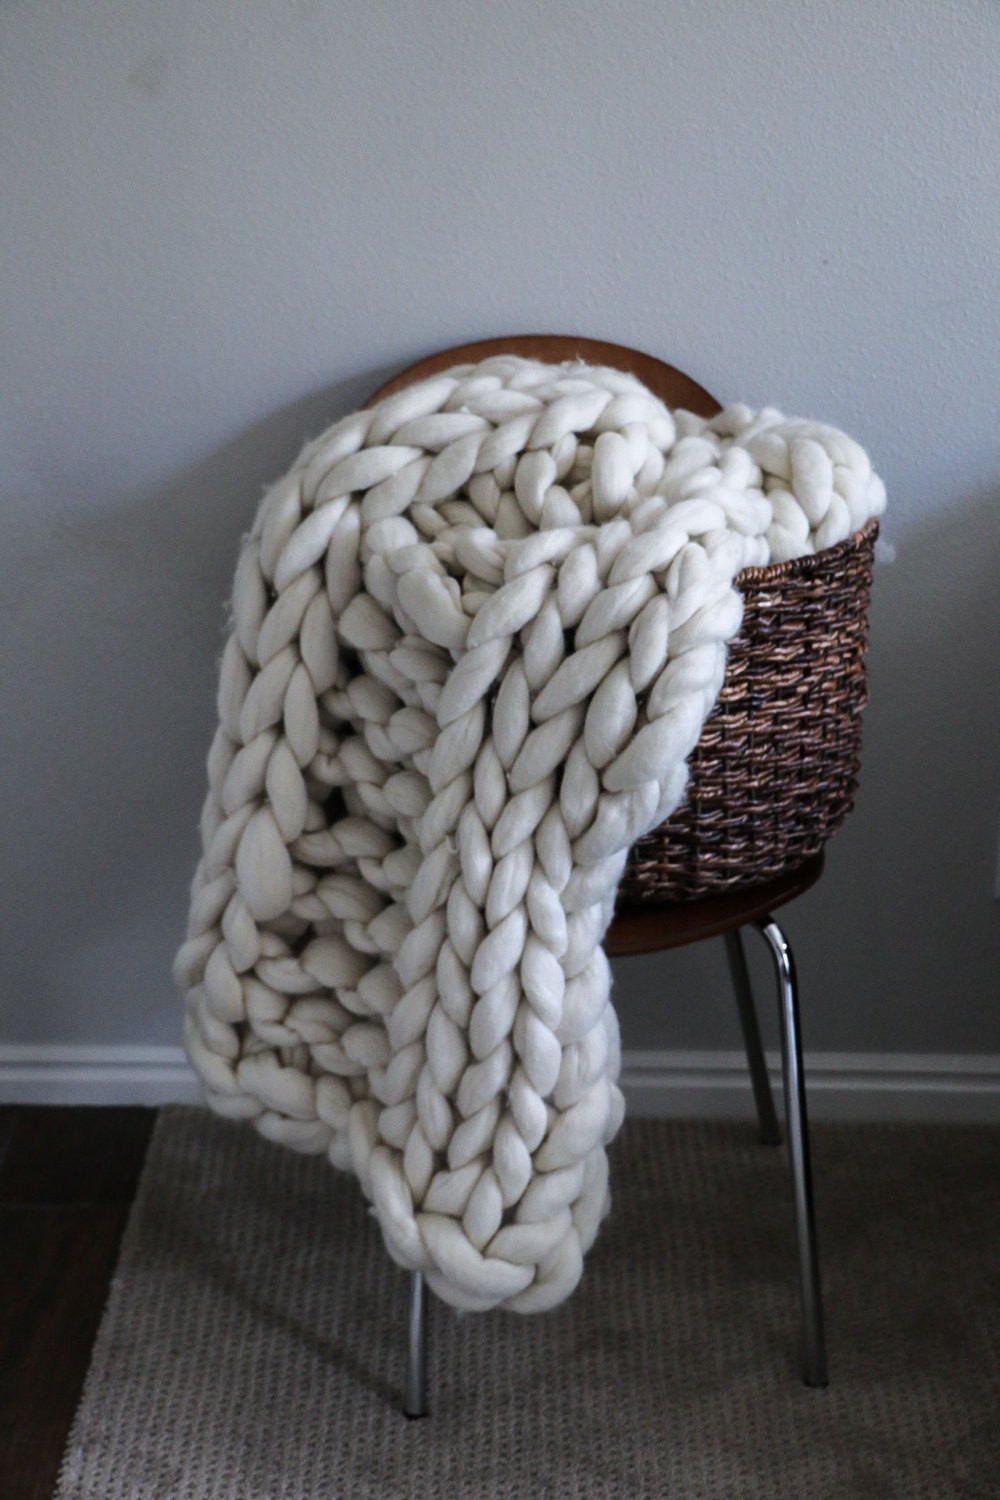 Inspirational Merino Wool Thick Knit Blanket by Sarahlouco Fat Yarn Blanket Of Adorable 40 Pics Fat Yarn Blanket